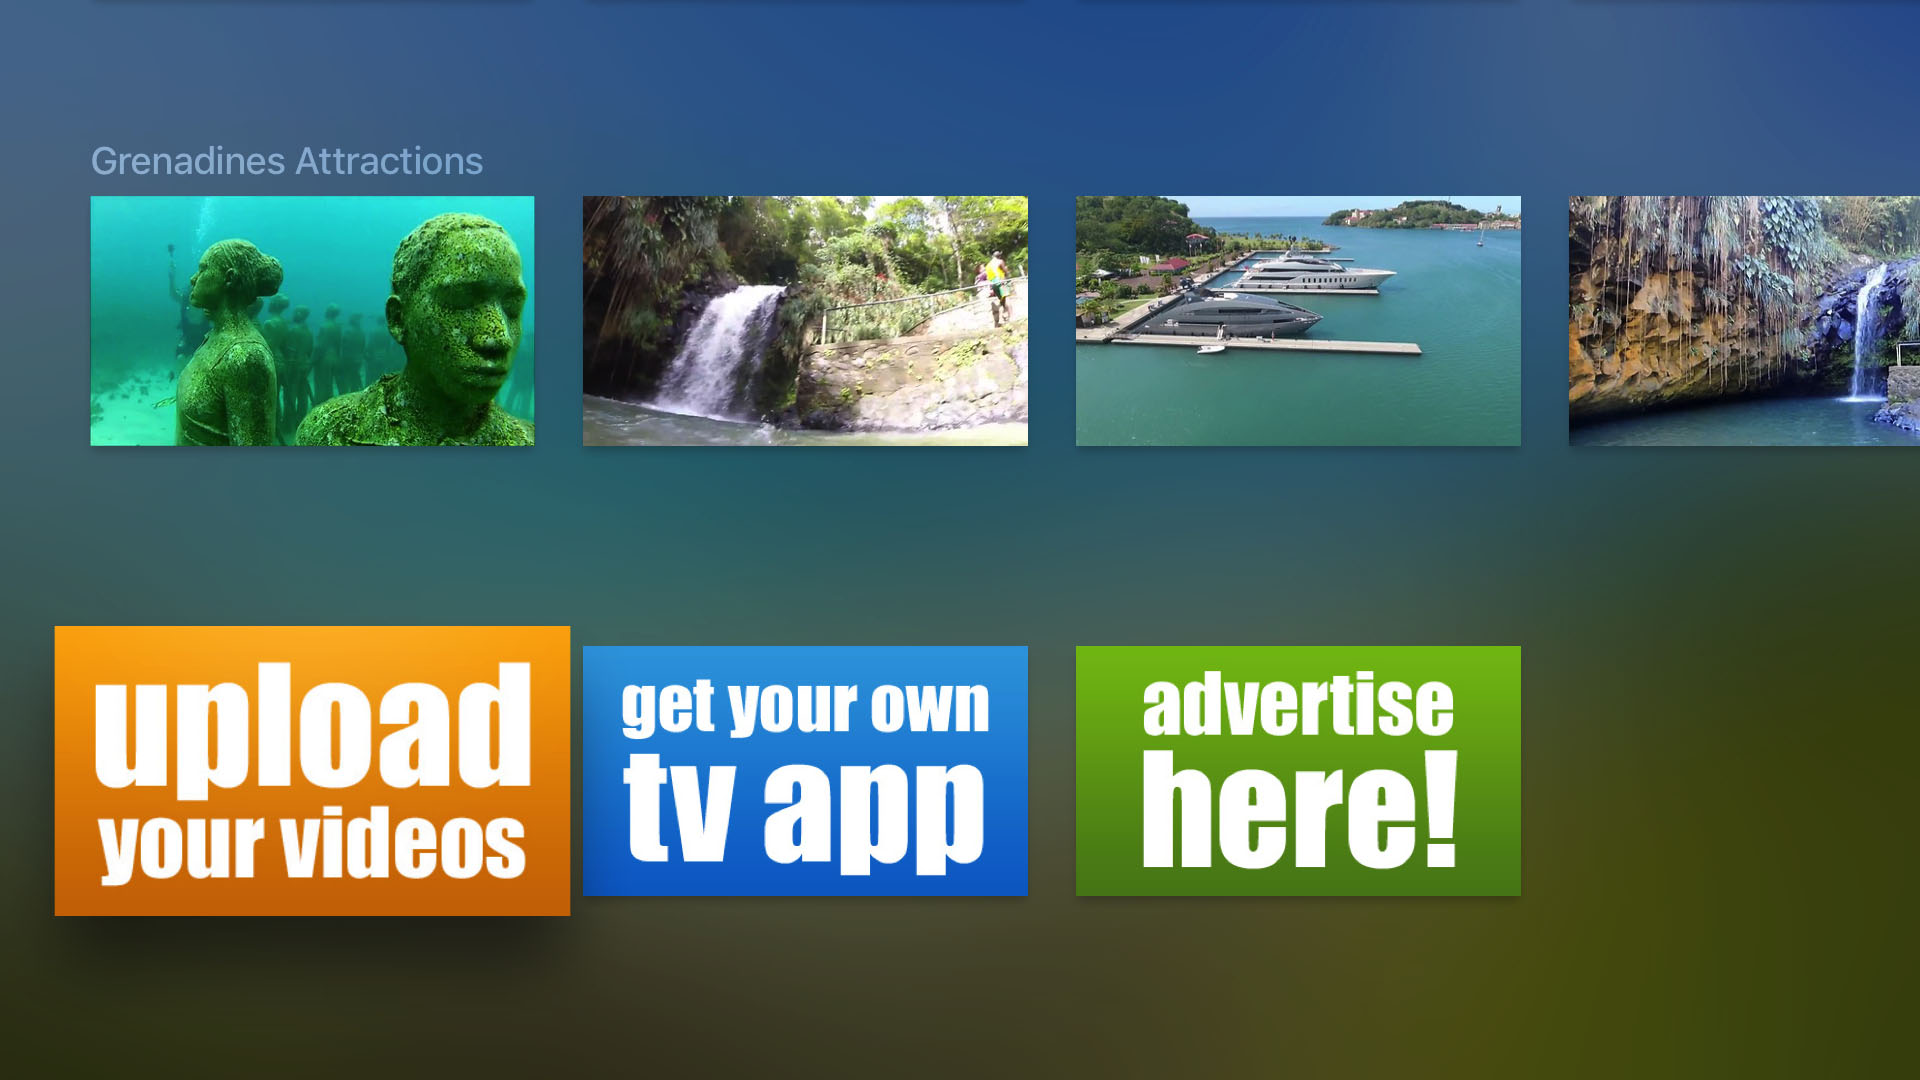 The Grenadines Channel Screenshot 003